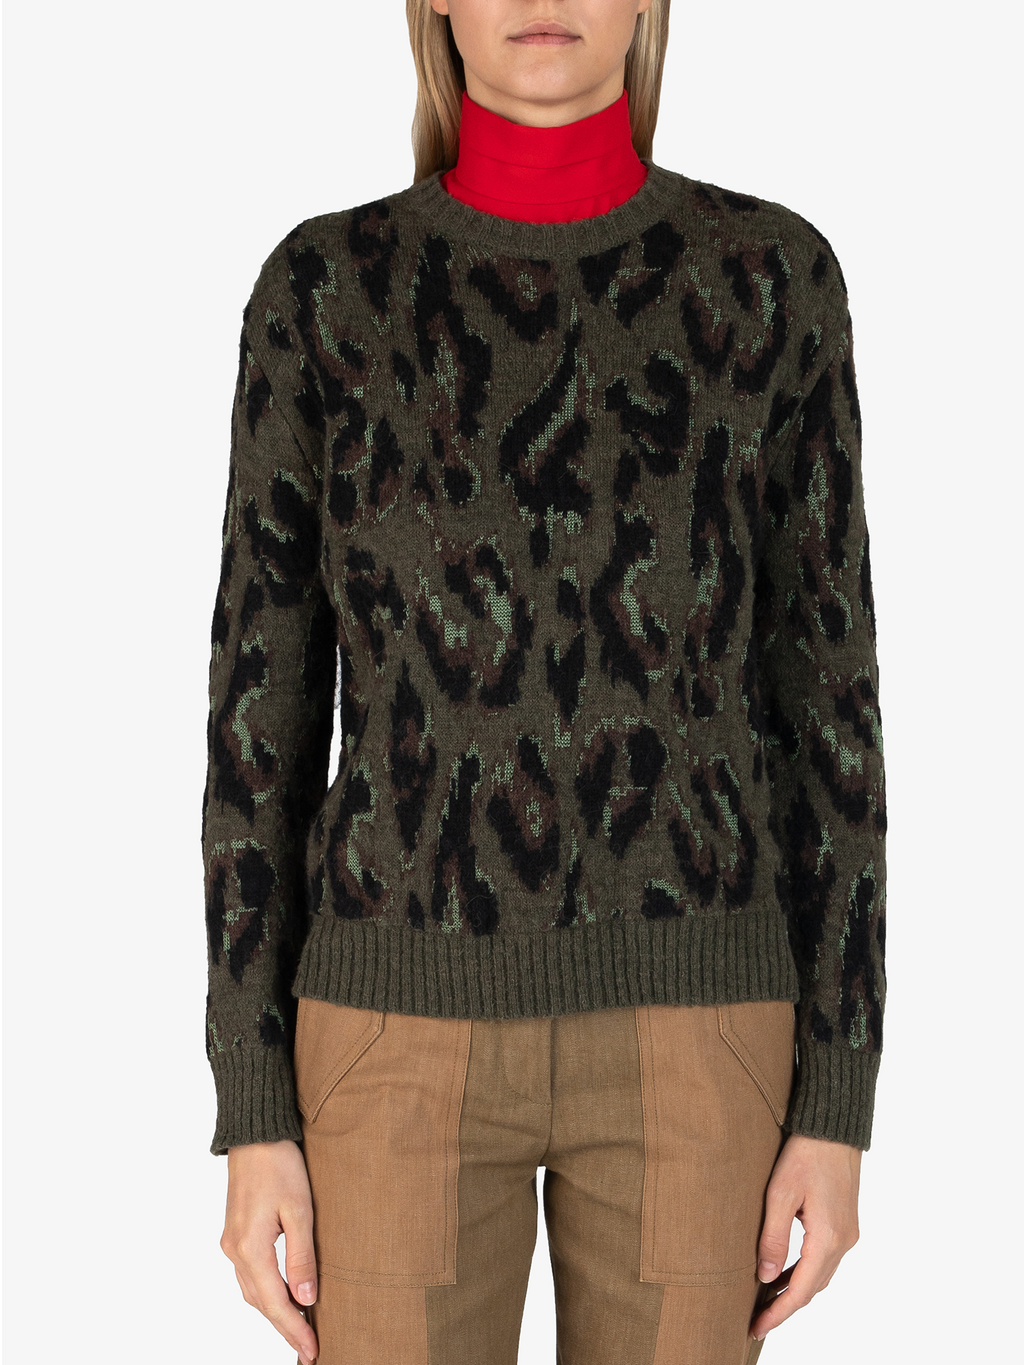 Derek Lam 10 Crosby Evan Sweater